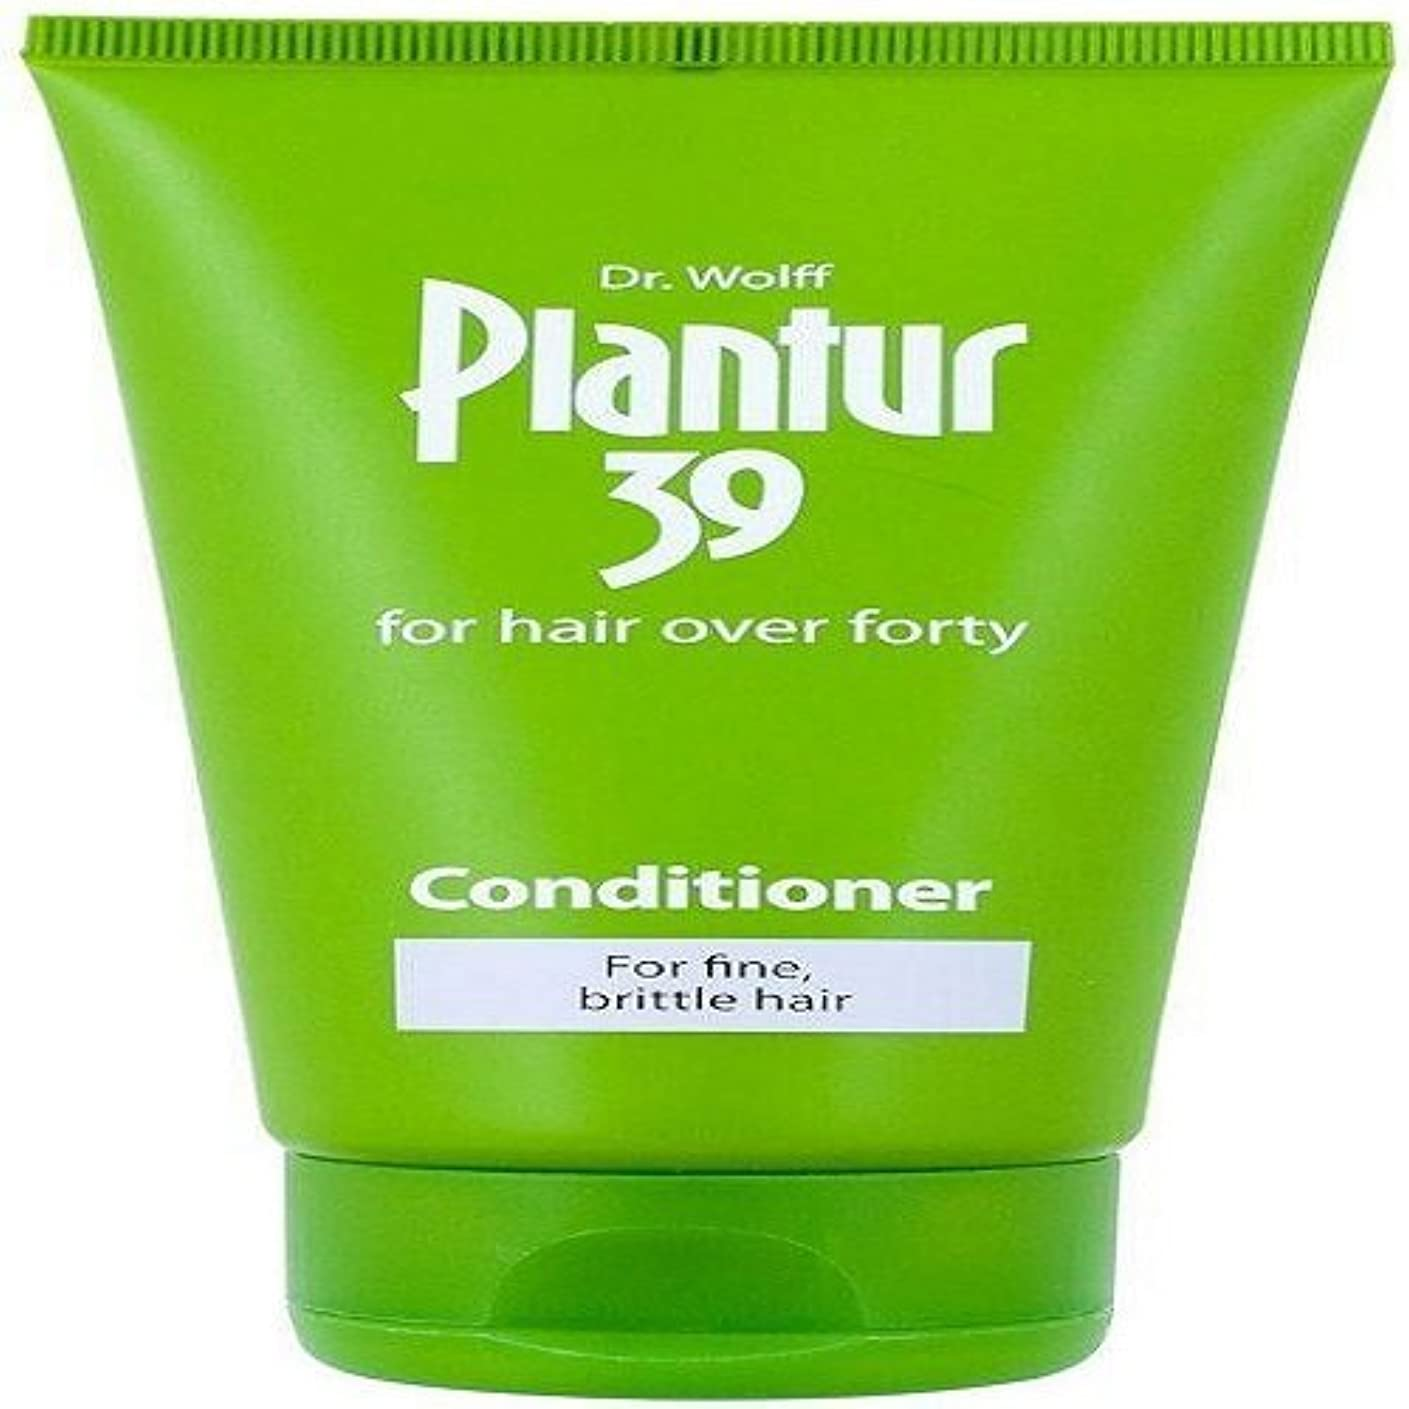 望ましい顔料活力Plantur 39 150ml Fine & Brittle hair conditioner by Plantur [並行輸入品]